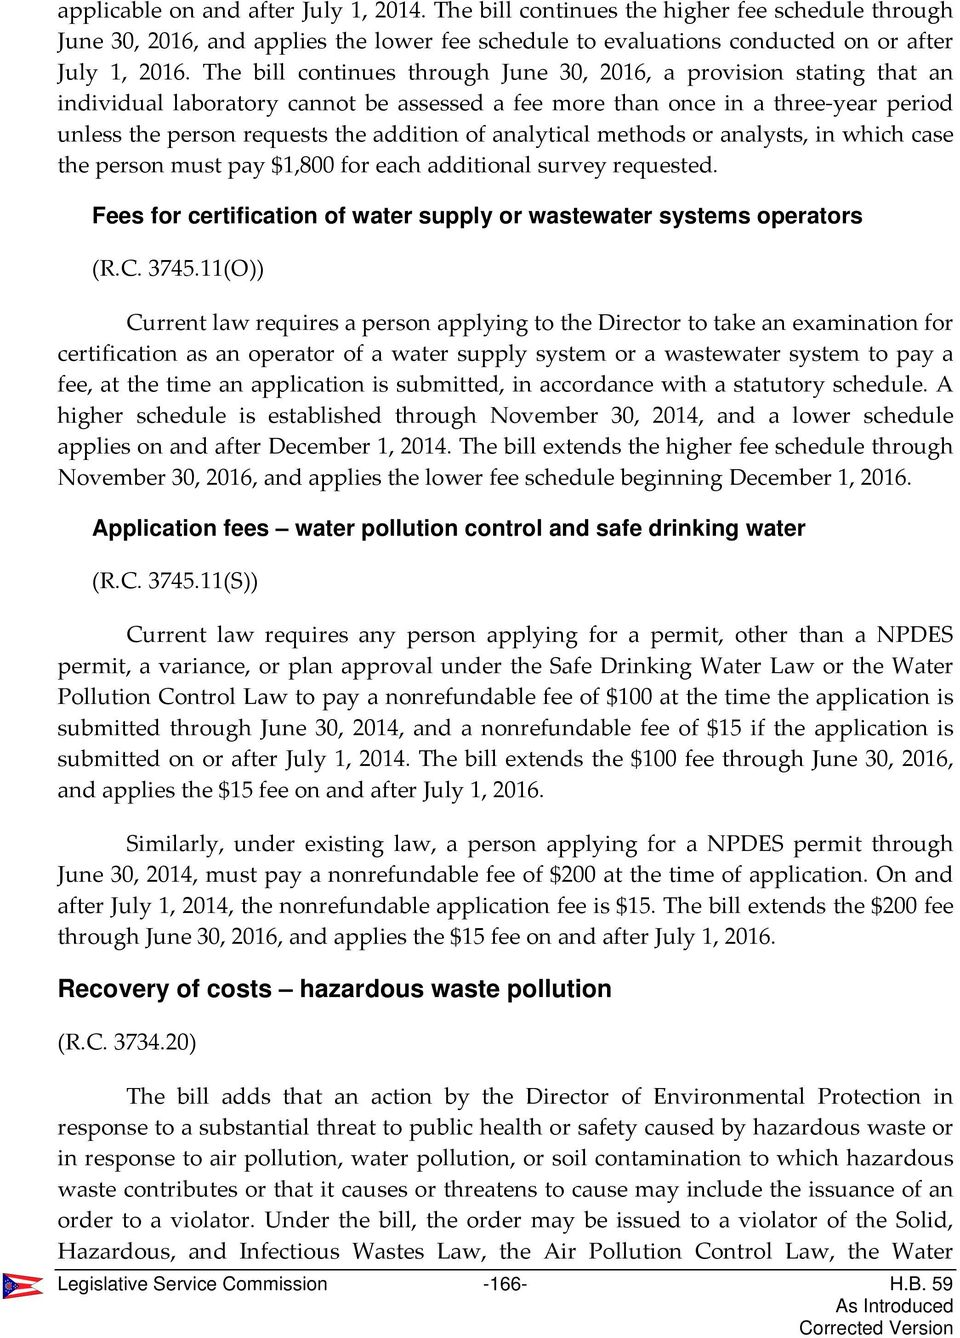 analytical methods or analysts, in which case the person must pay $1,800 for each additional survey requested. Fees for certification of water supply or wastewater systems operators (R.C. 3745.